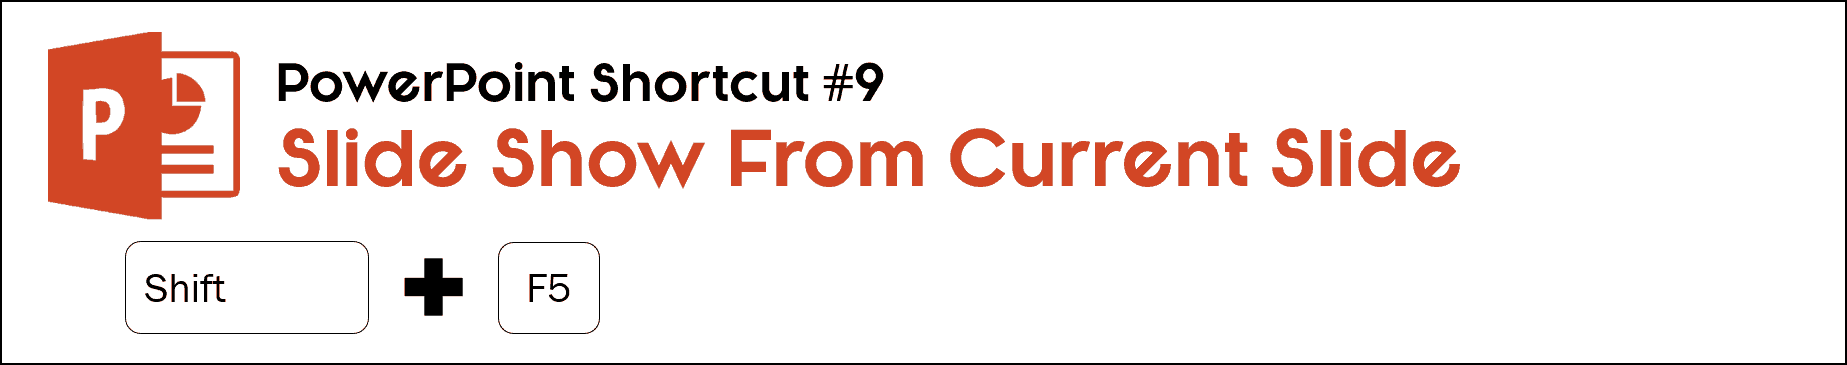 To start a slideshow from the current slide you are on in PowerPoint, hit Shift plus F5 on your keyboard